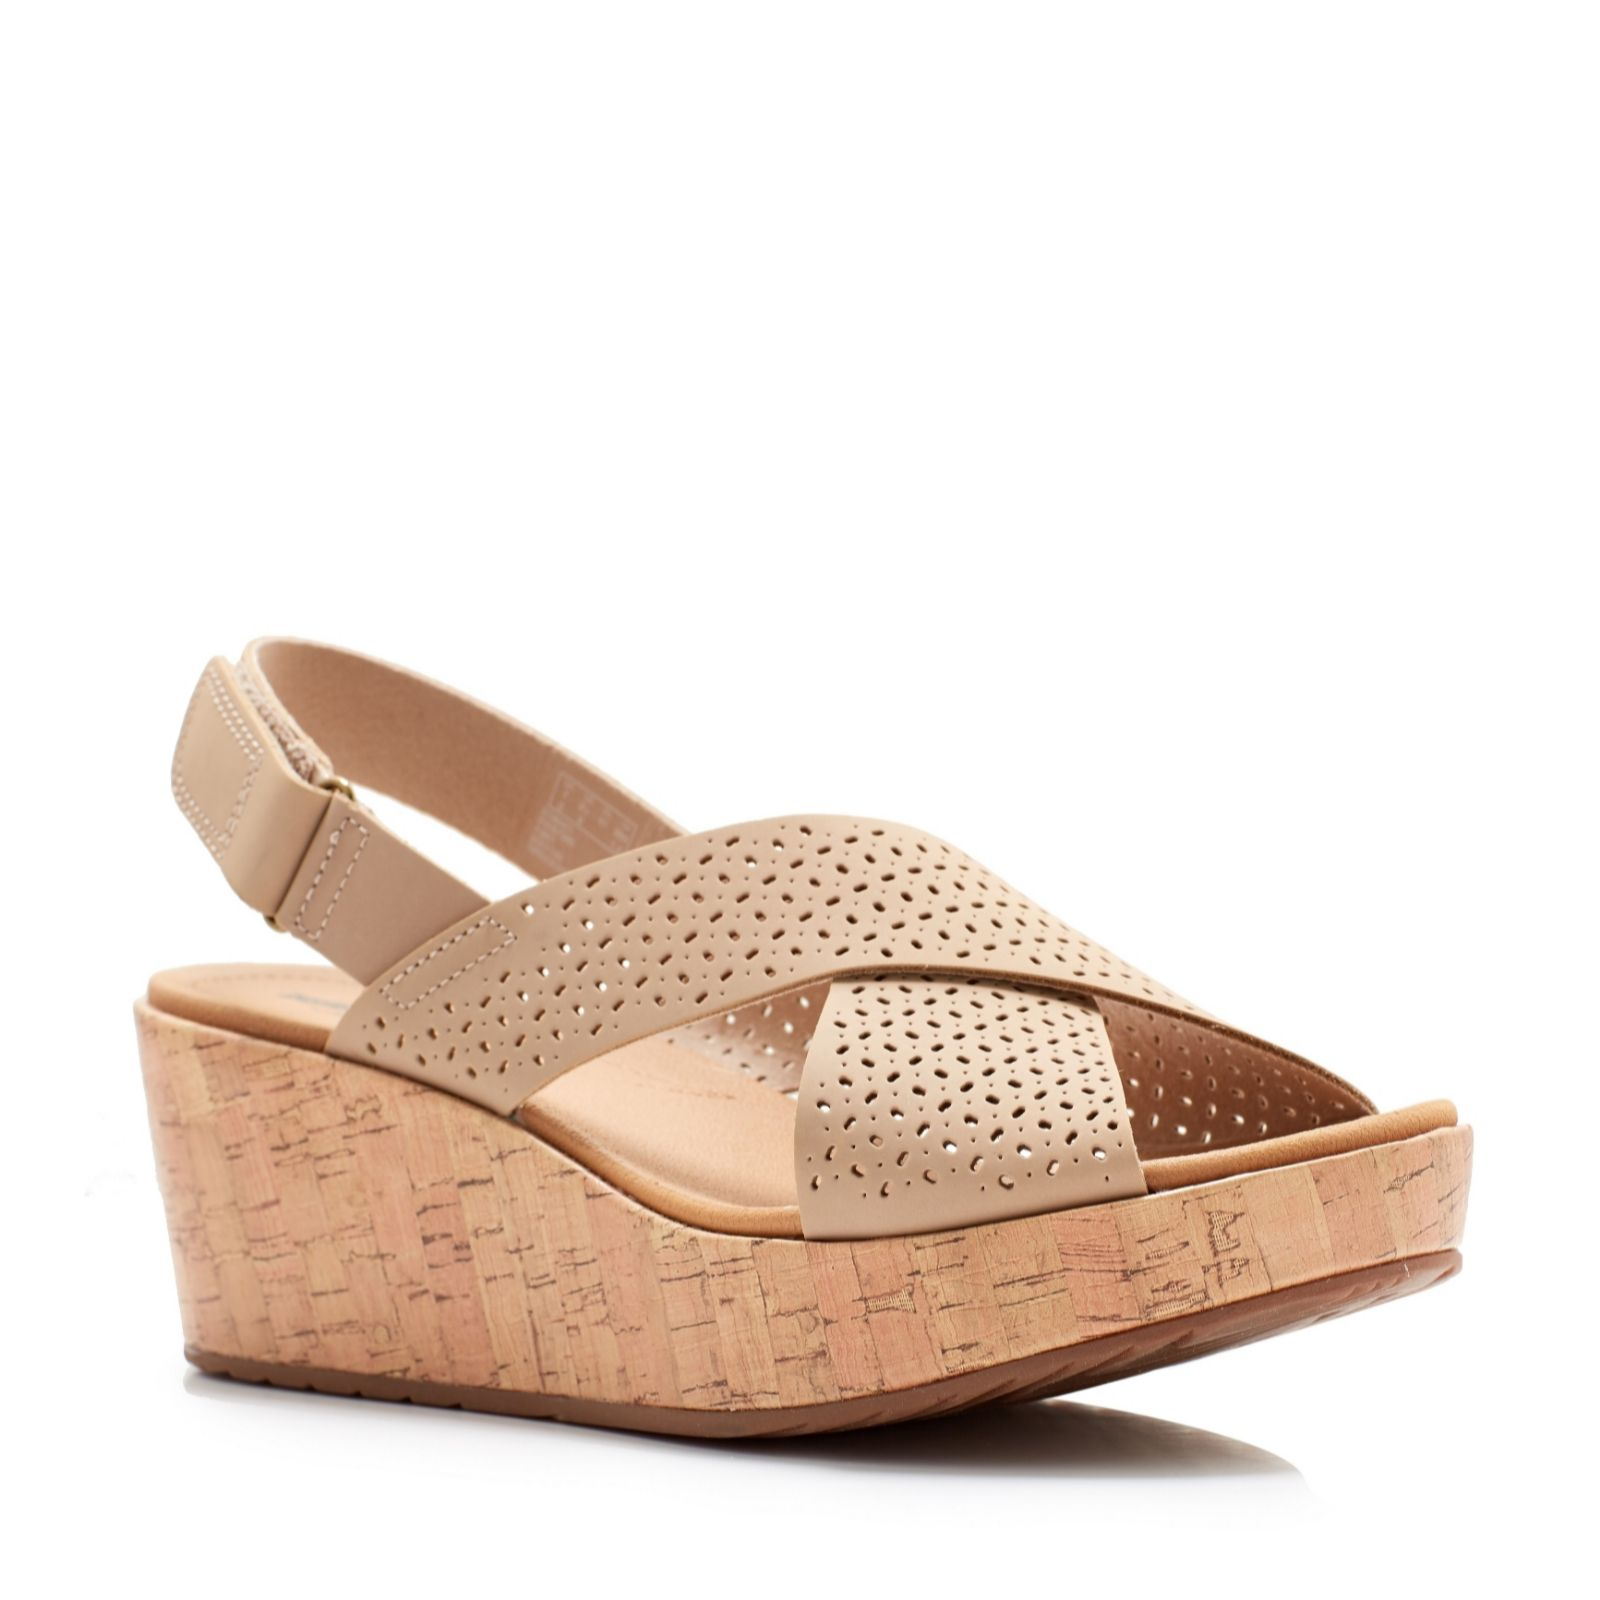 e59f4049f902 Clarks Laser Cut Leather Wedge Sandal Wide Fit - QVC UK